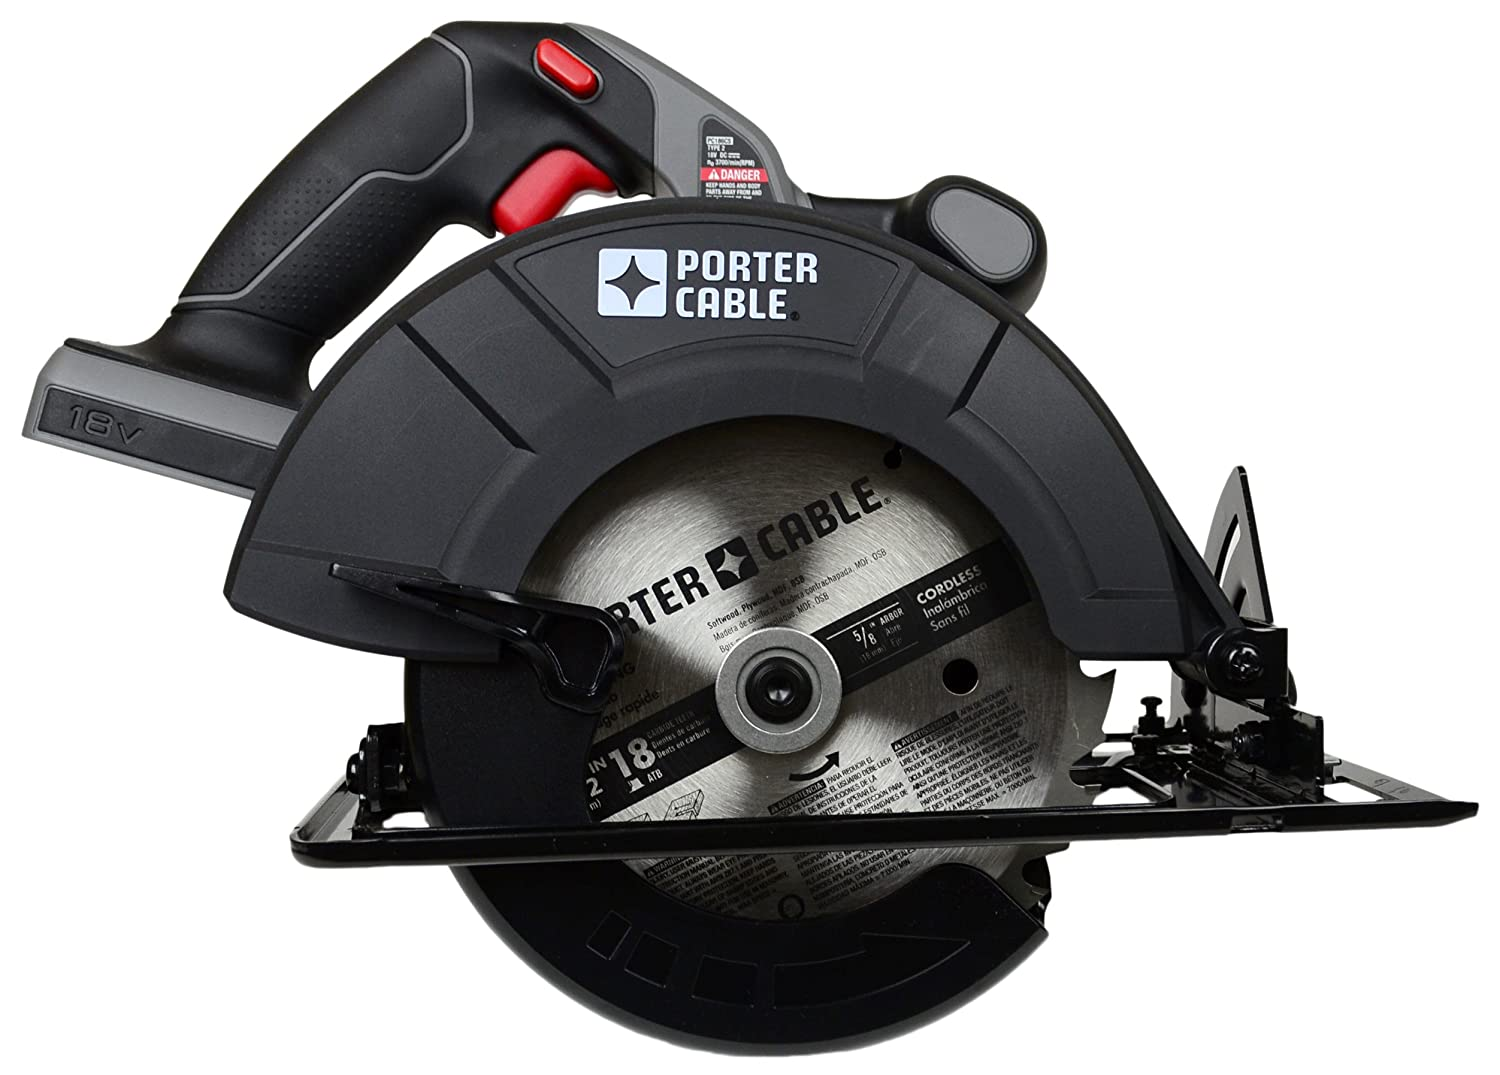 Porter cable pc186cs 18 volt cordless 6 12 inch circular saw bare porter cable pc186cs 18 volt cordless 6 12 inch circular saw bare tool tool only no battery power circular saws amazon keyboard keysfo